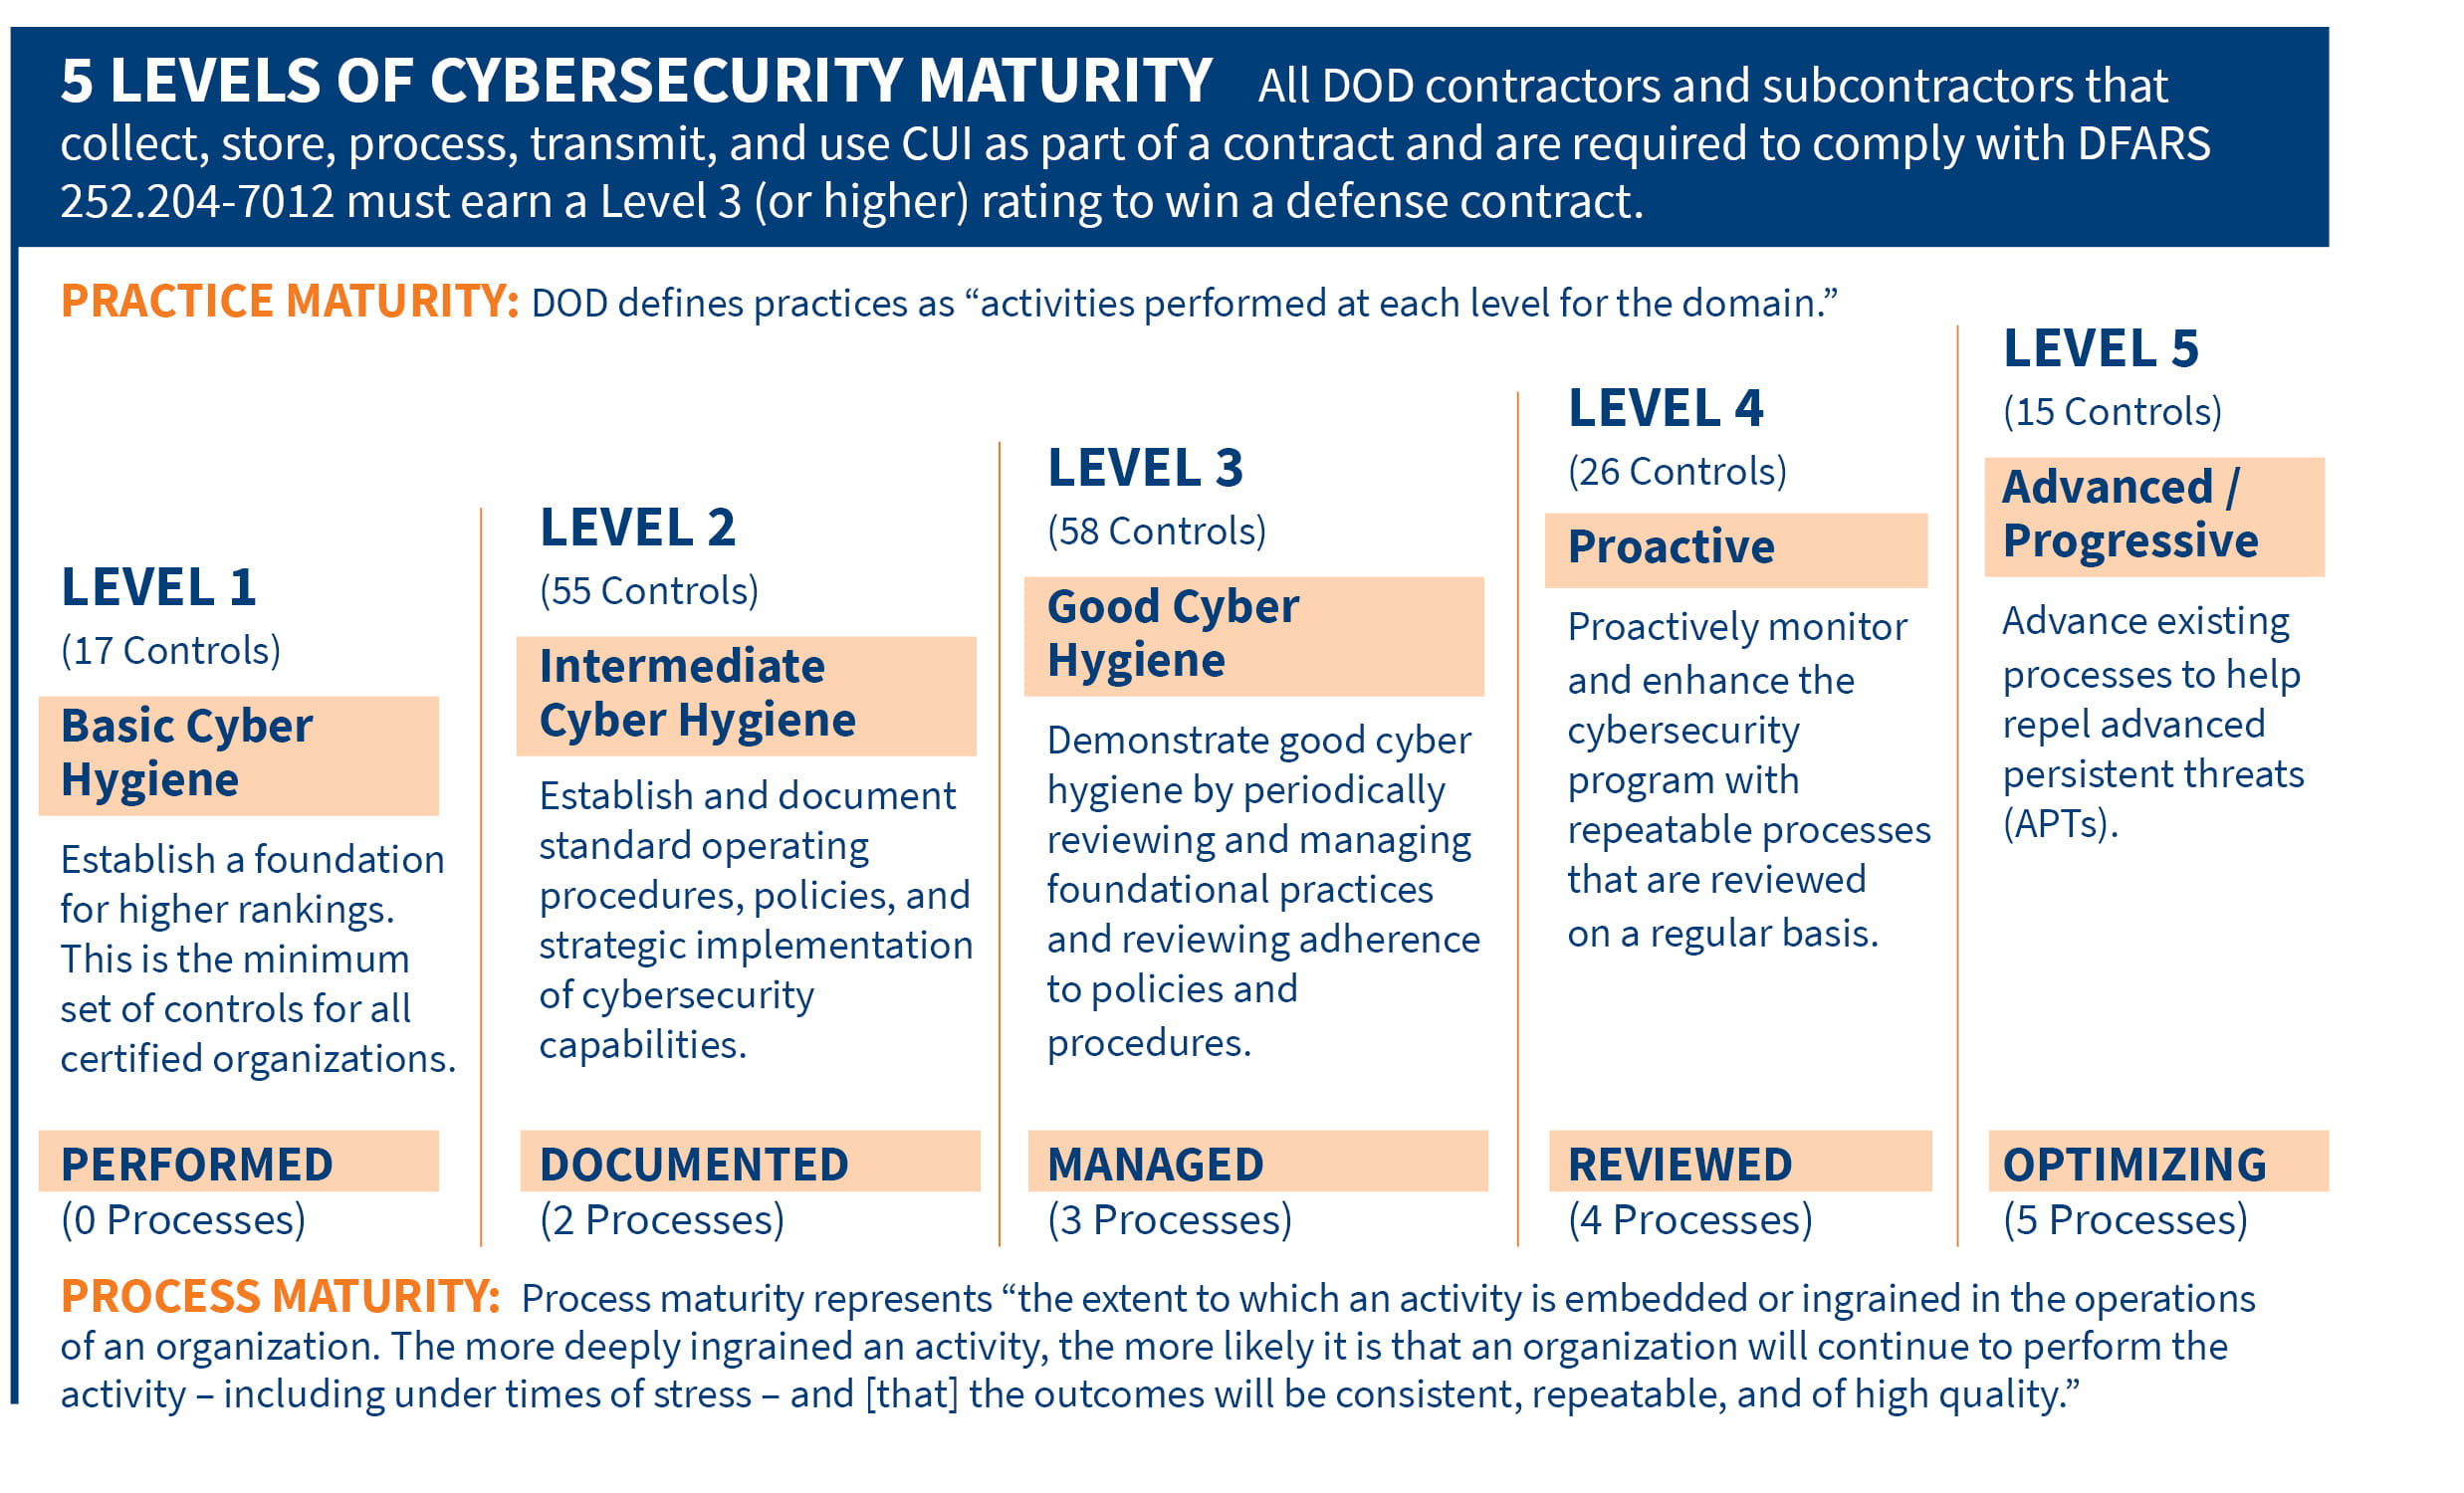 5 Levels Cybersecurity Maturity